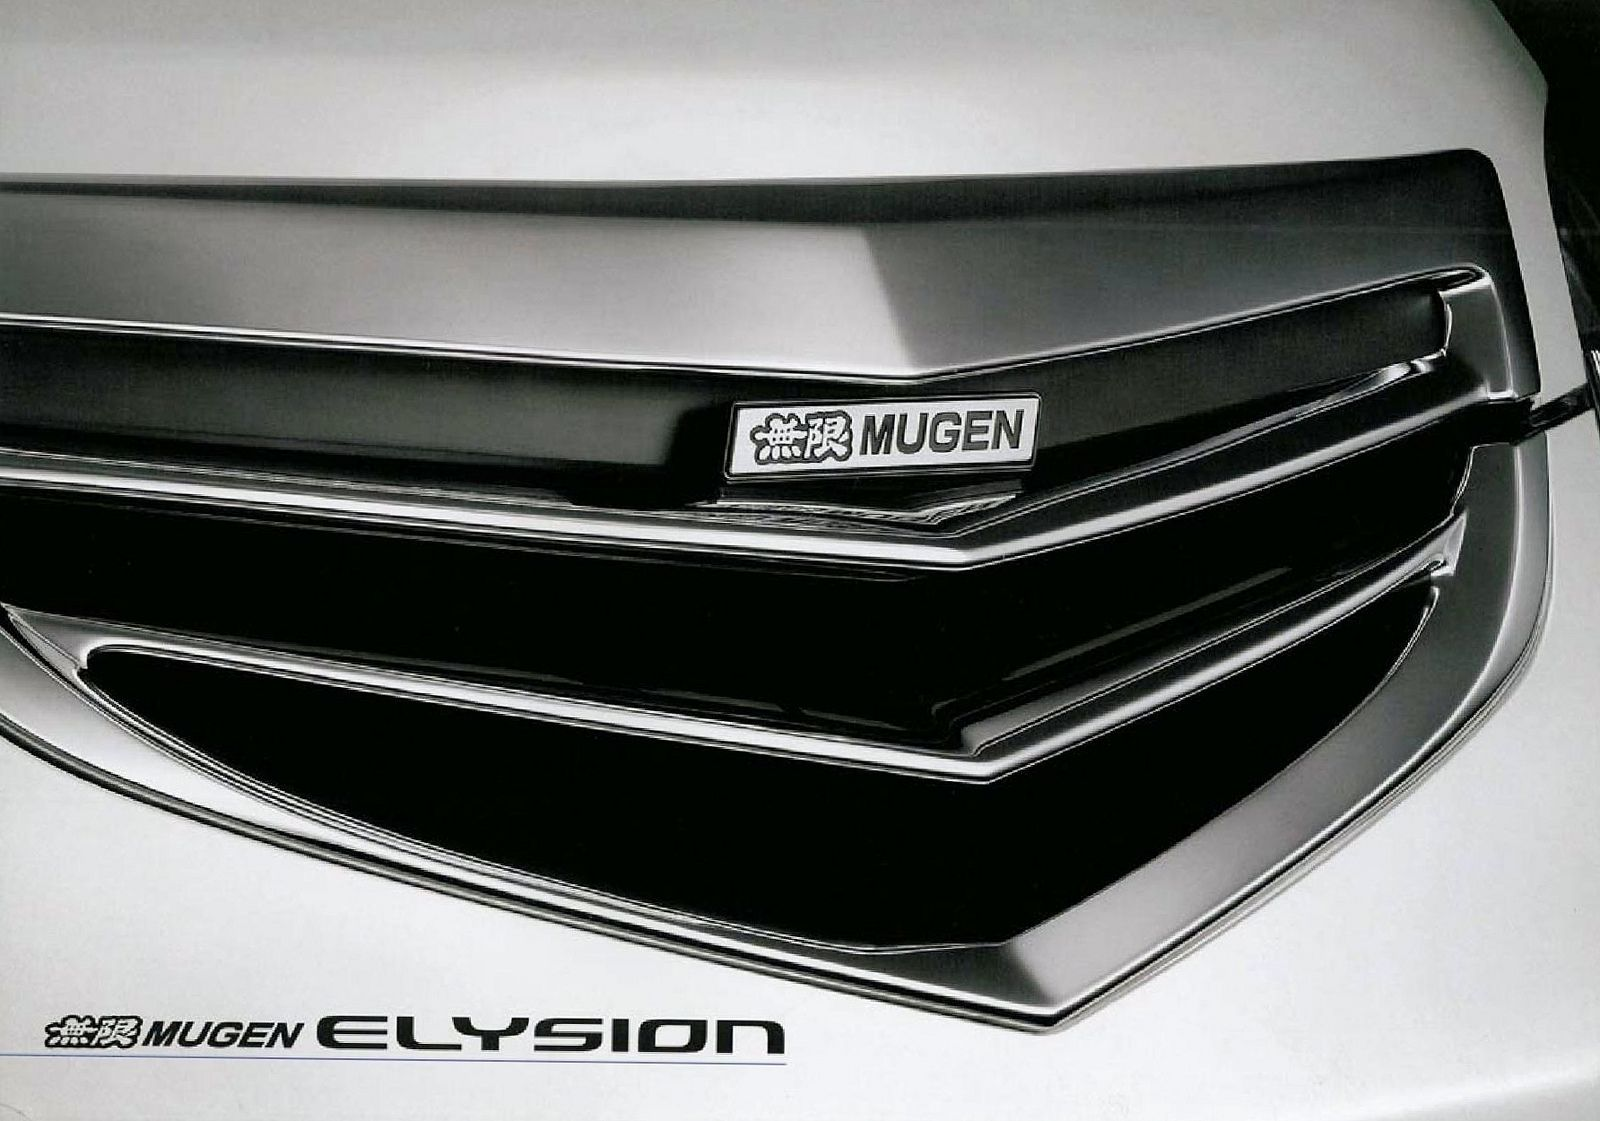 Honda Mugen Elysion Japan Brochure 2005